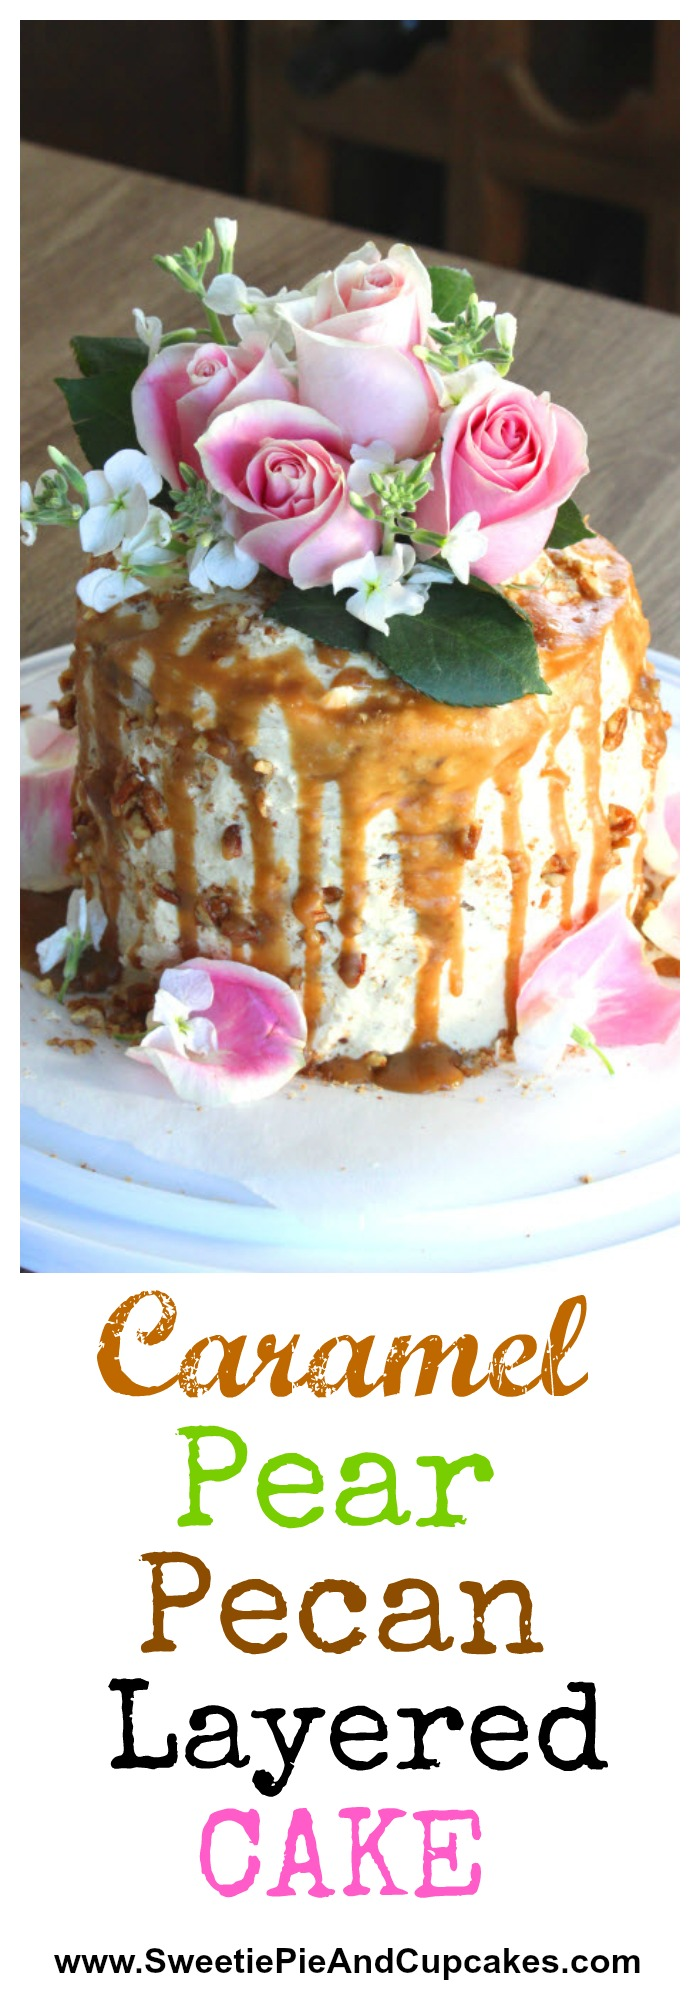 Caramel Pear Pecan Layered Cake